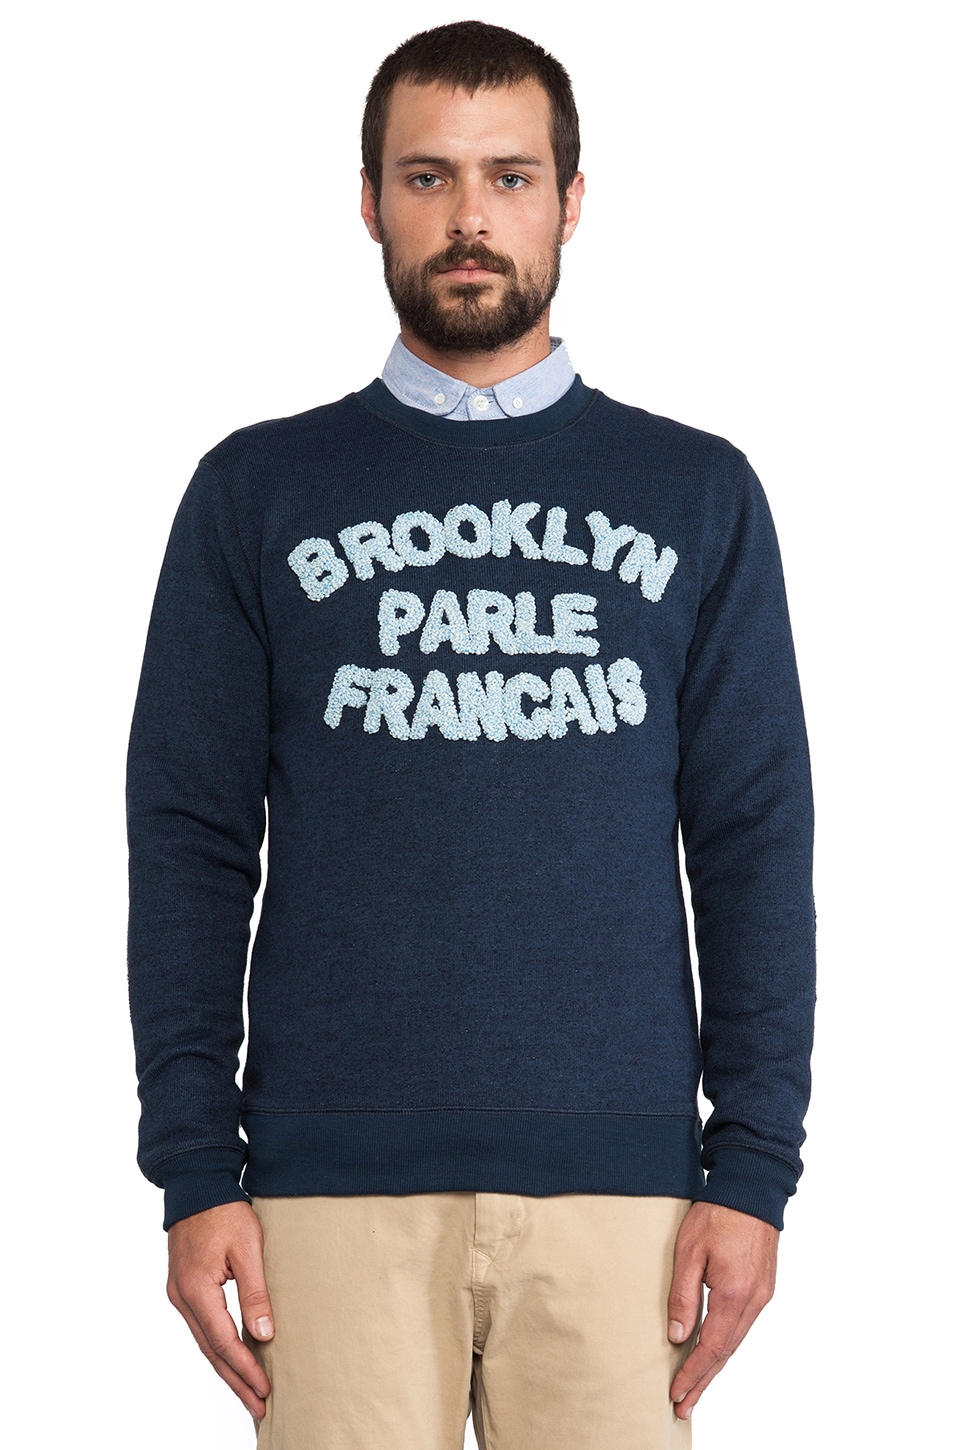 Brooklyn We Go Hard Brooklyn Parle Francais Sweatshirt in Navy & Blue